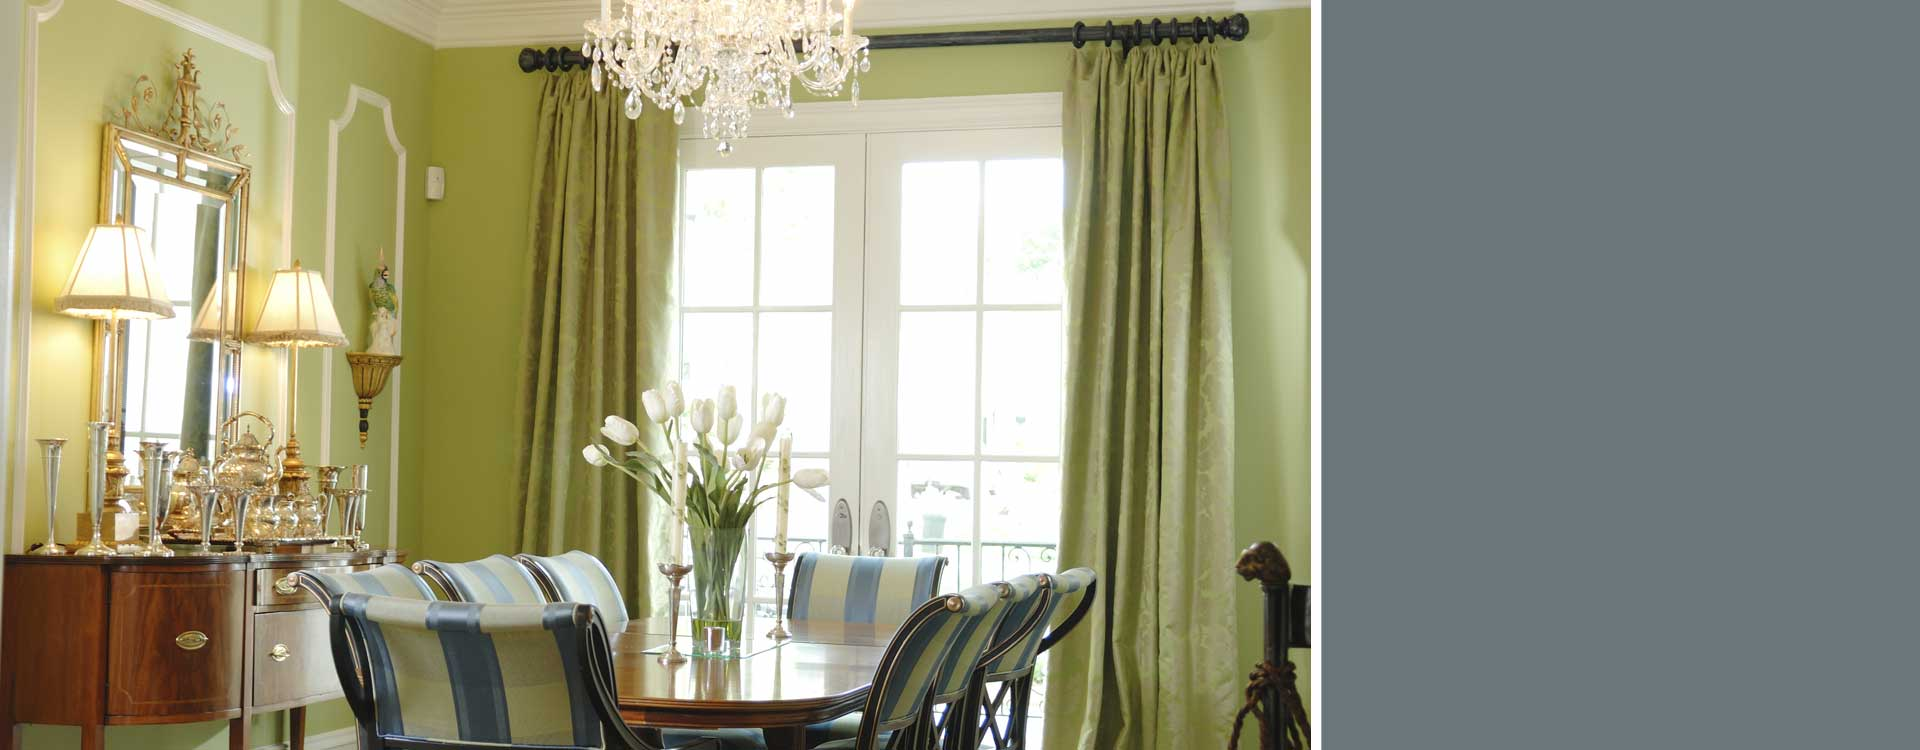 Why Regal Drapes? Custom French Door Drapes In Less Time And For Less  Money. (often 20%   60% Less Than Other Custom Workrooms)